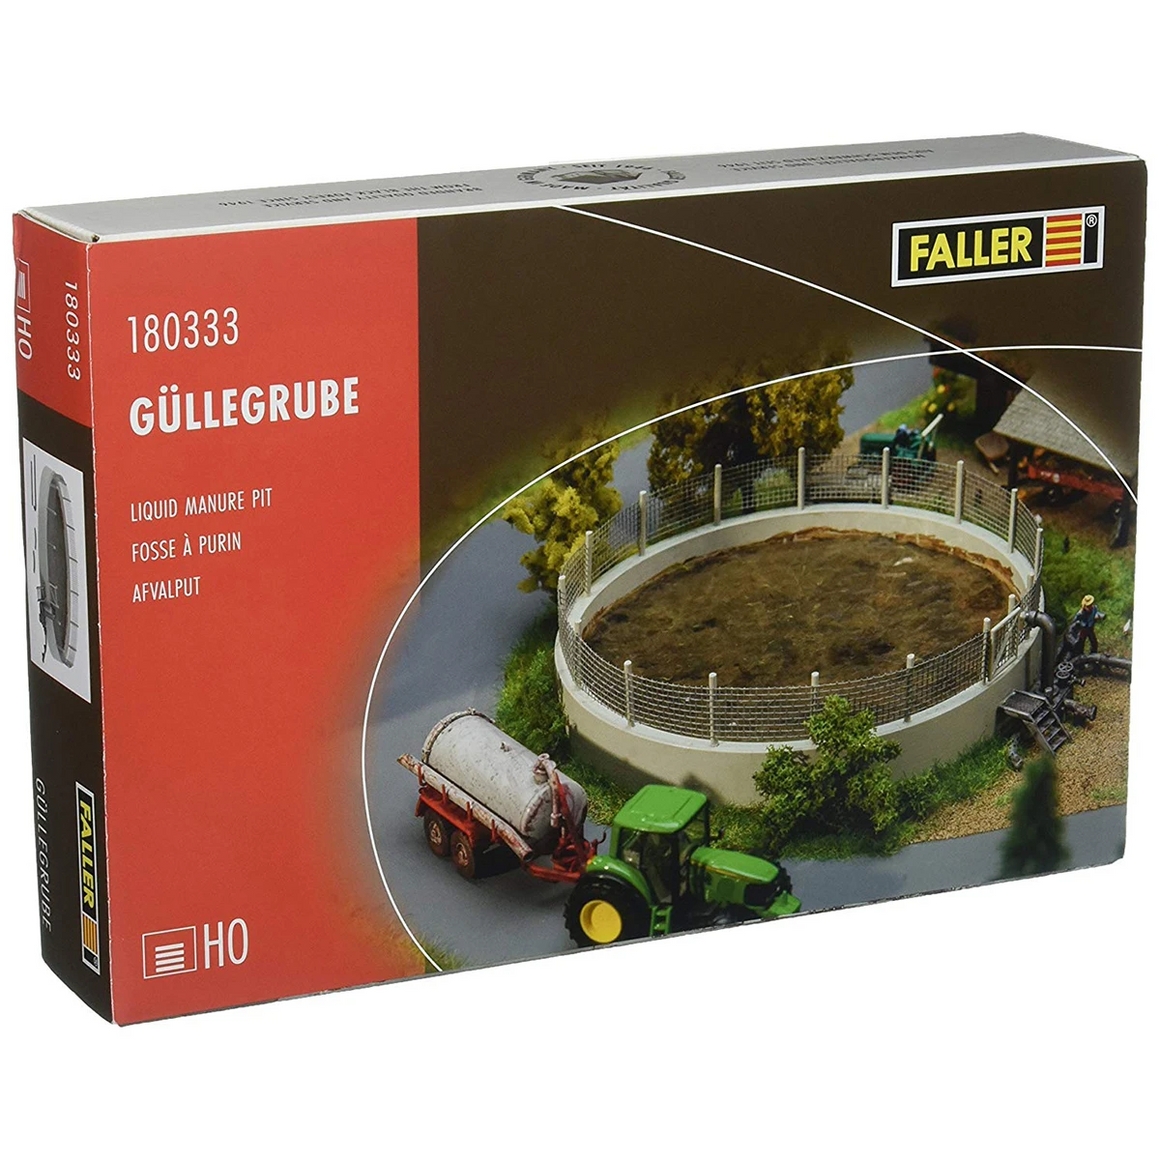 HO Scale: Liquid Manure Pit - Kit